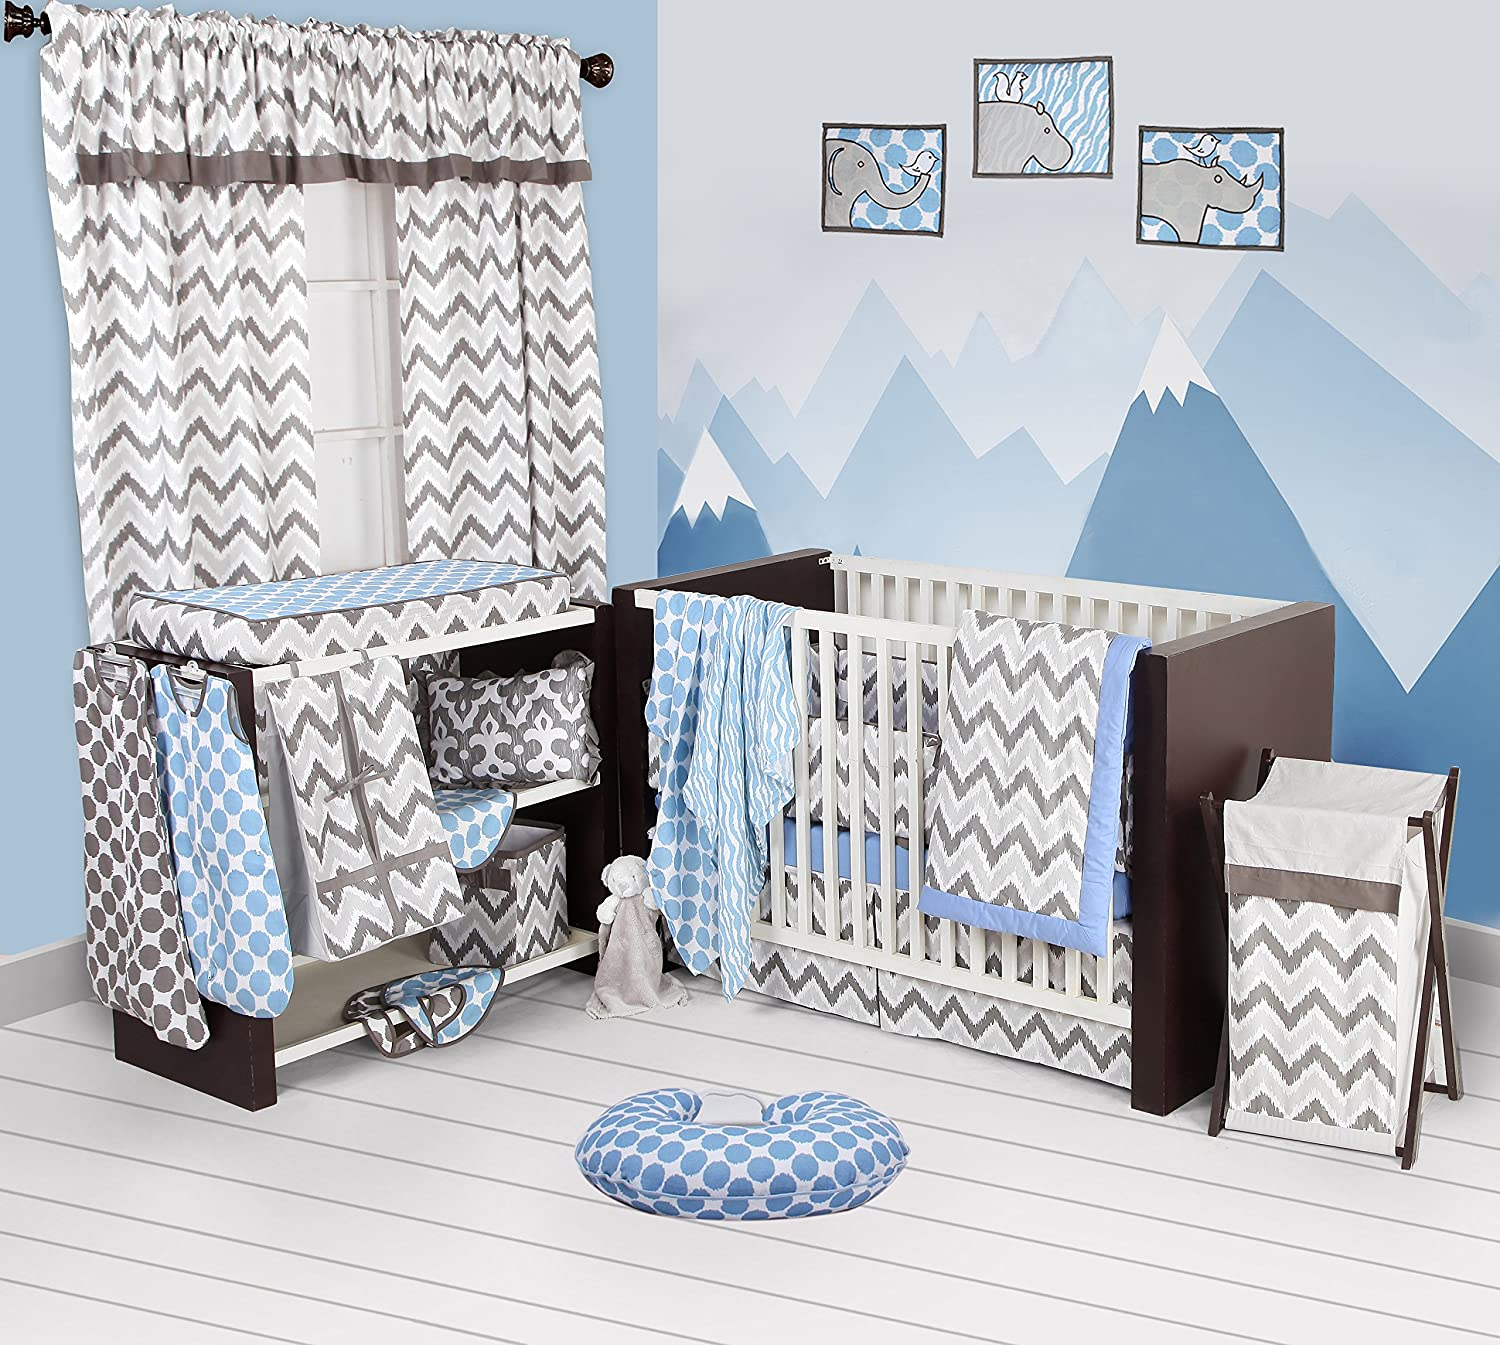 Bacati - Blue/grey Ikat Chevron Muslin 10 Pc Crib Set with Bumper Pad by Bacati   B01BGF881U